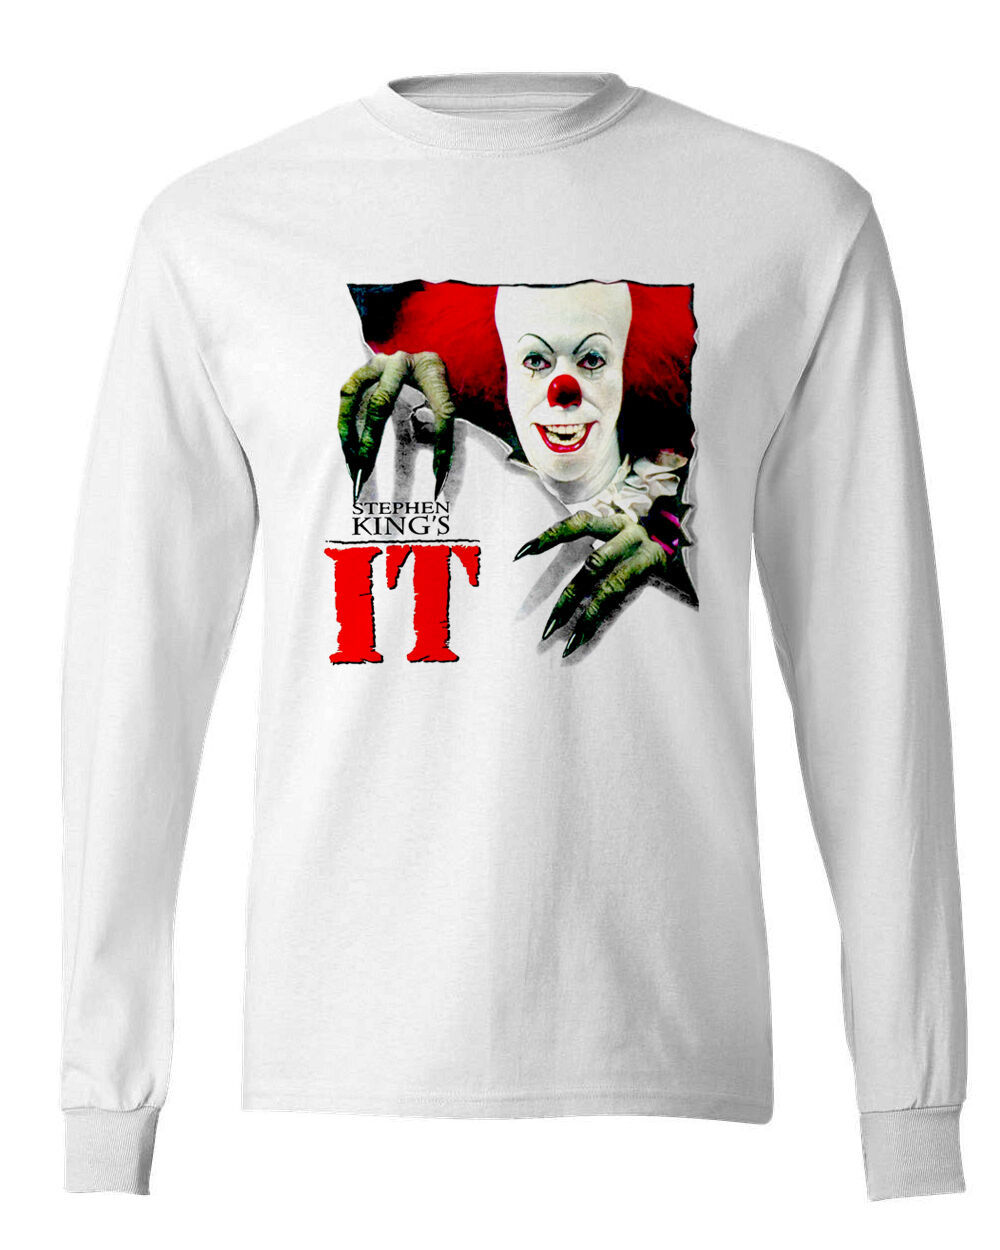 Stephen King's IT long sleeve T-shirt Cujo retro 80's horror movie 100% cotton